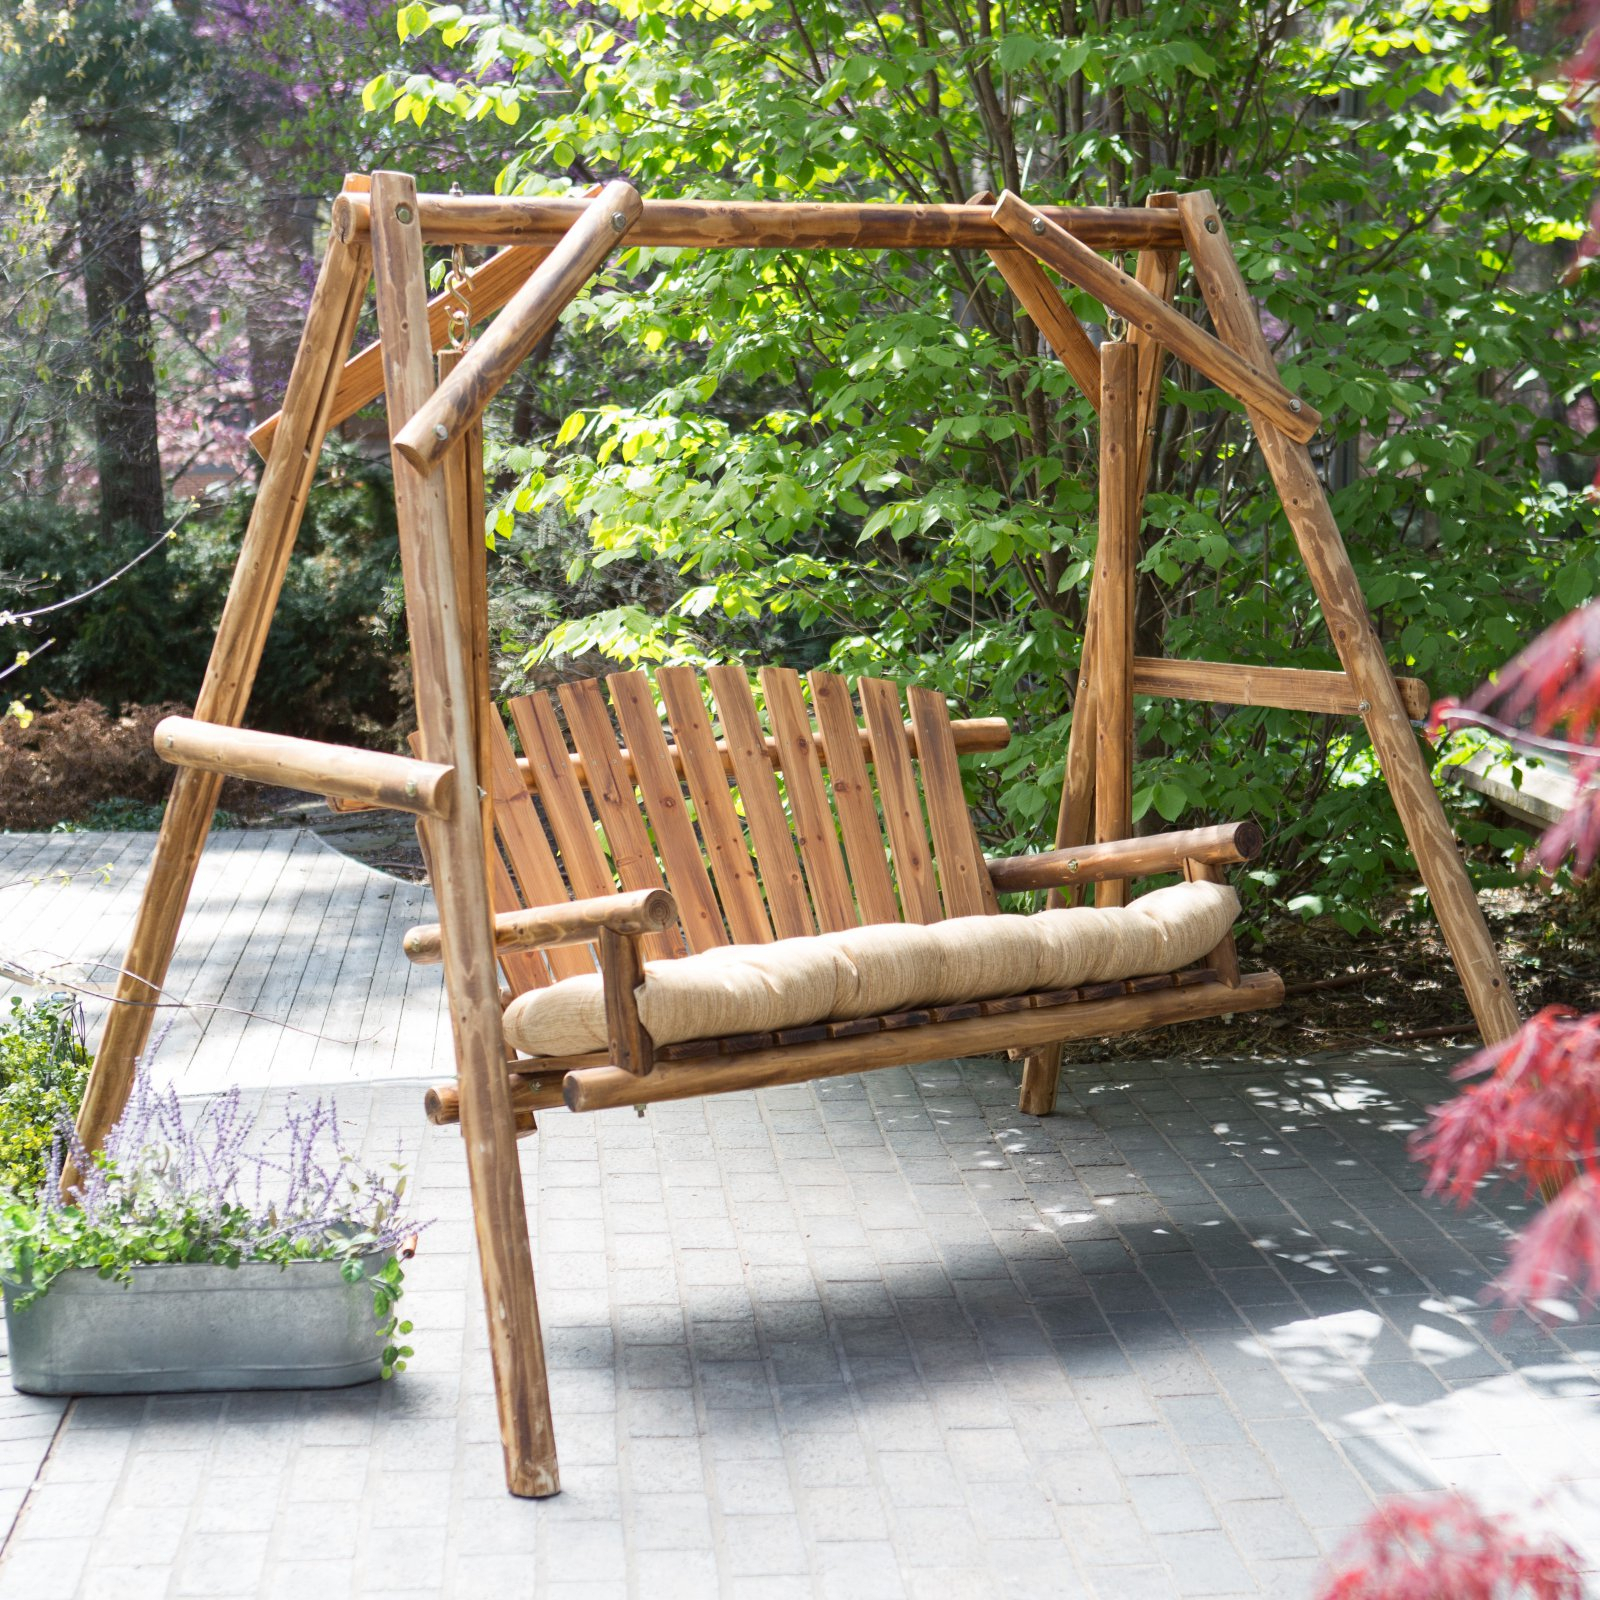 Coral Coast Rustic Oak Log Curved Back Porch Swing And A Frame Set – Walmart Pertaining To Hardwood Hanging Porch Swings With Stand (View 18 of 25)